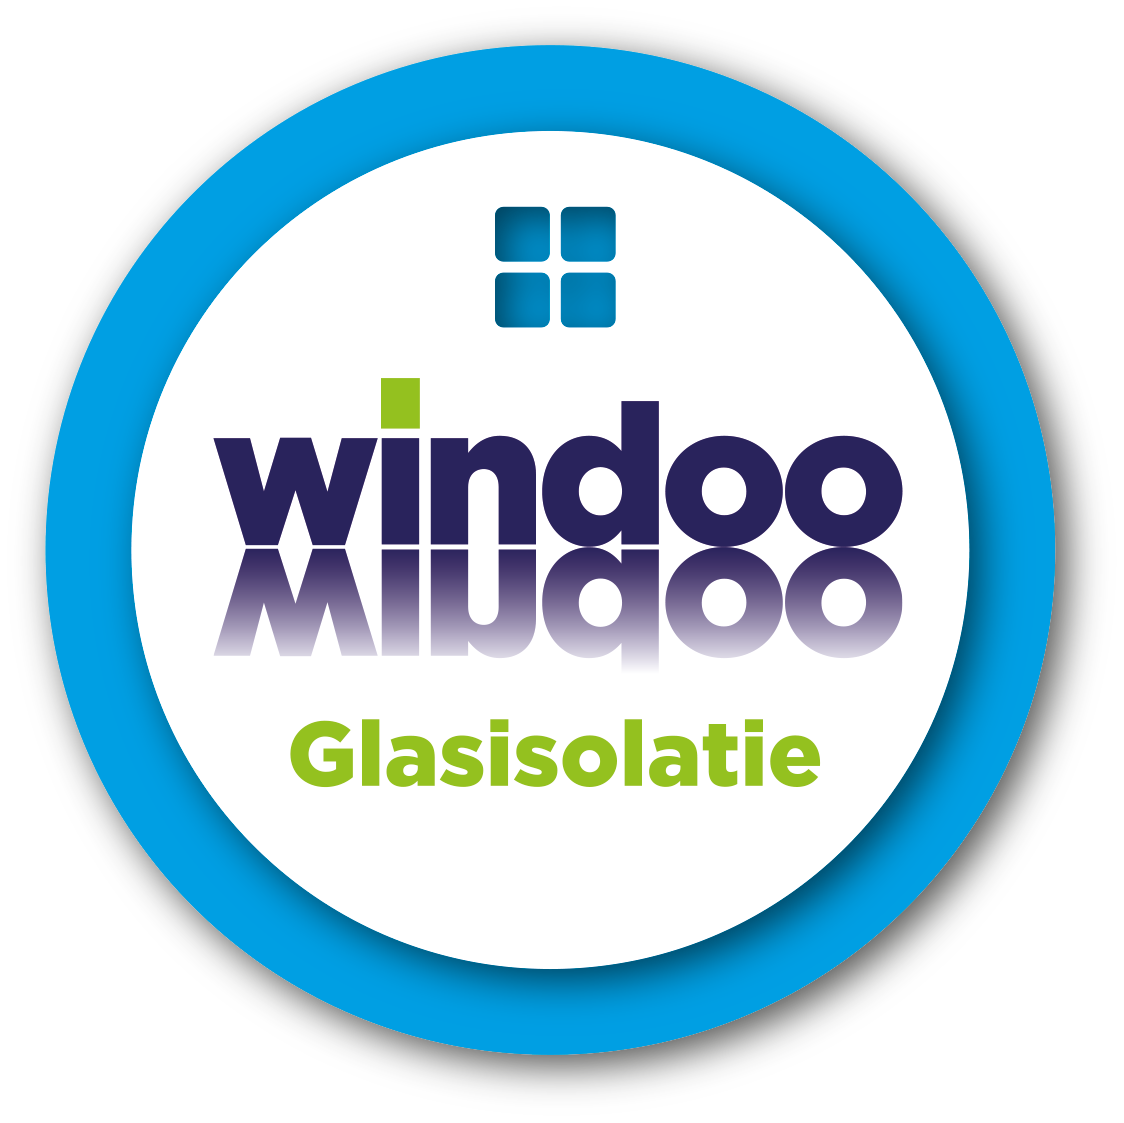 Windoo Glasisolatie logo